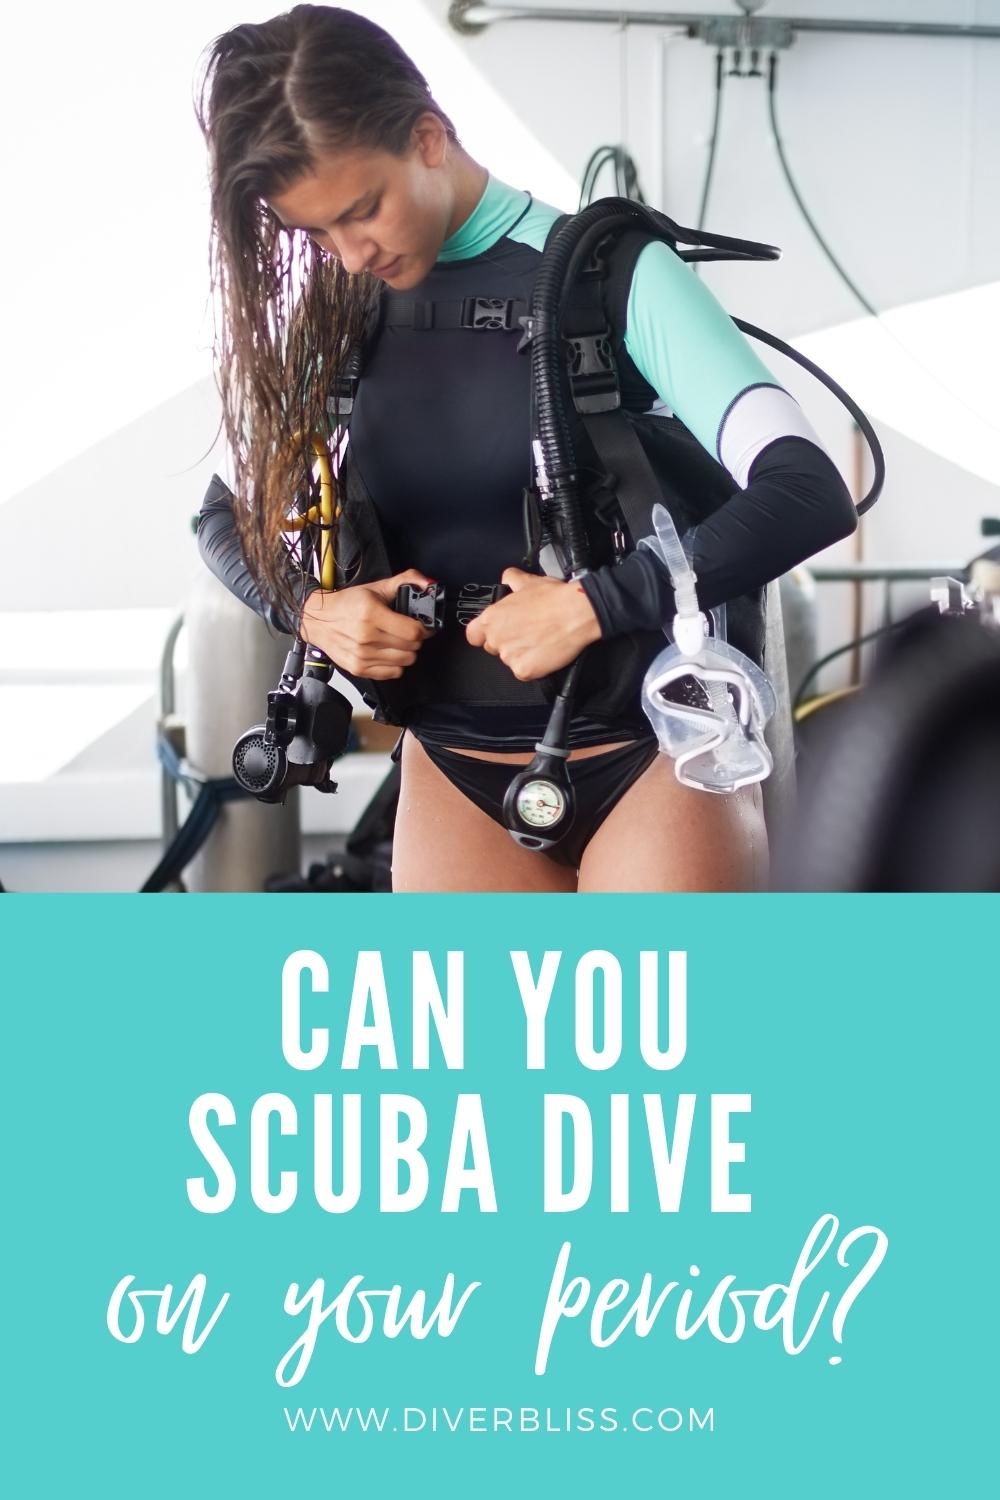 Can you scuba dive on your period